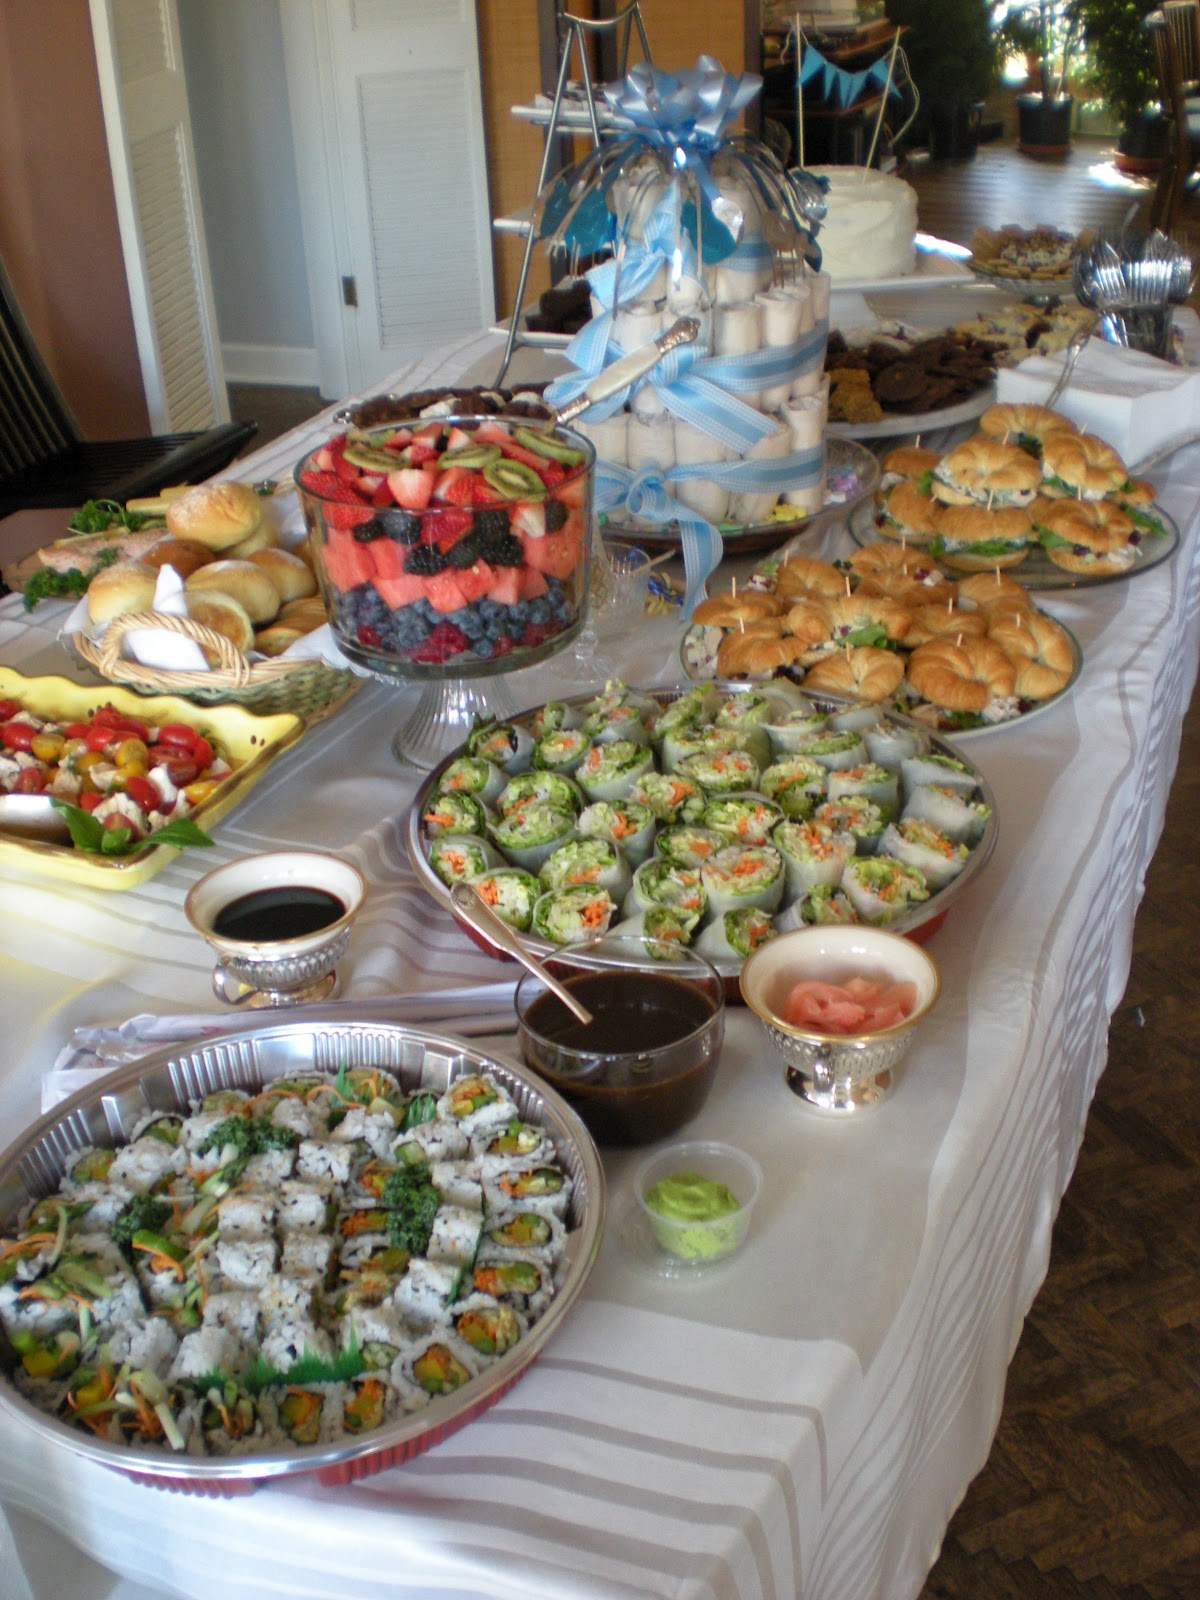 Modern Baby Shower Food Ideas: Baby Shower Food What To Serve with regard to Baby Shower Food Ideas For Boy